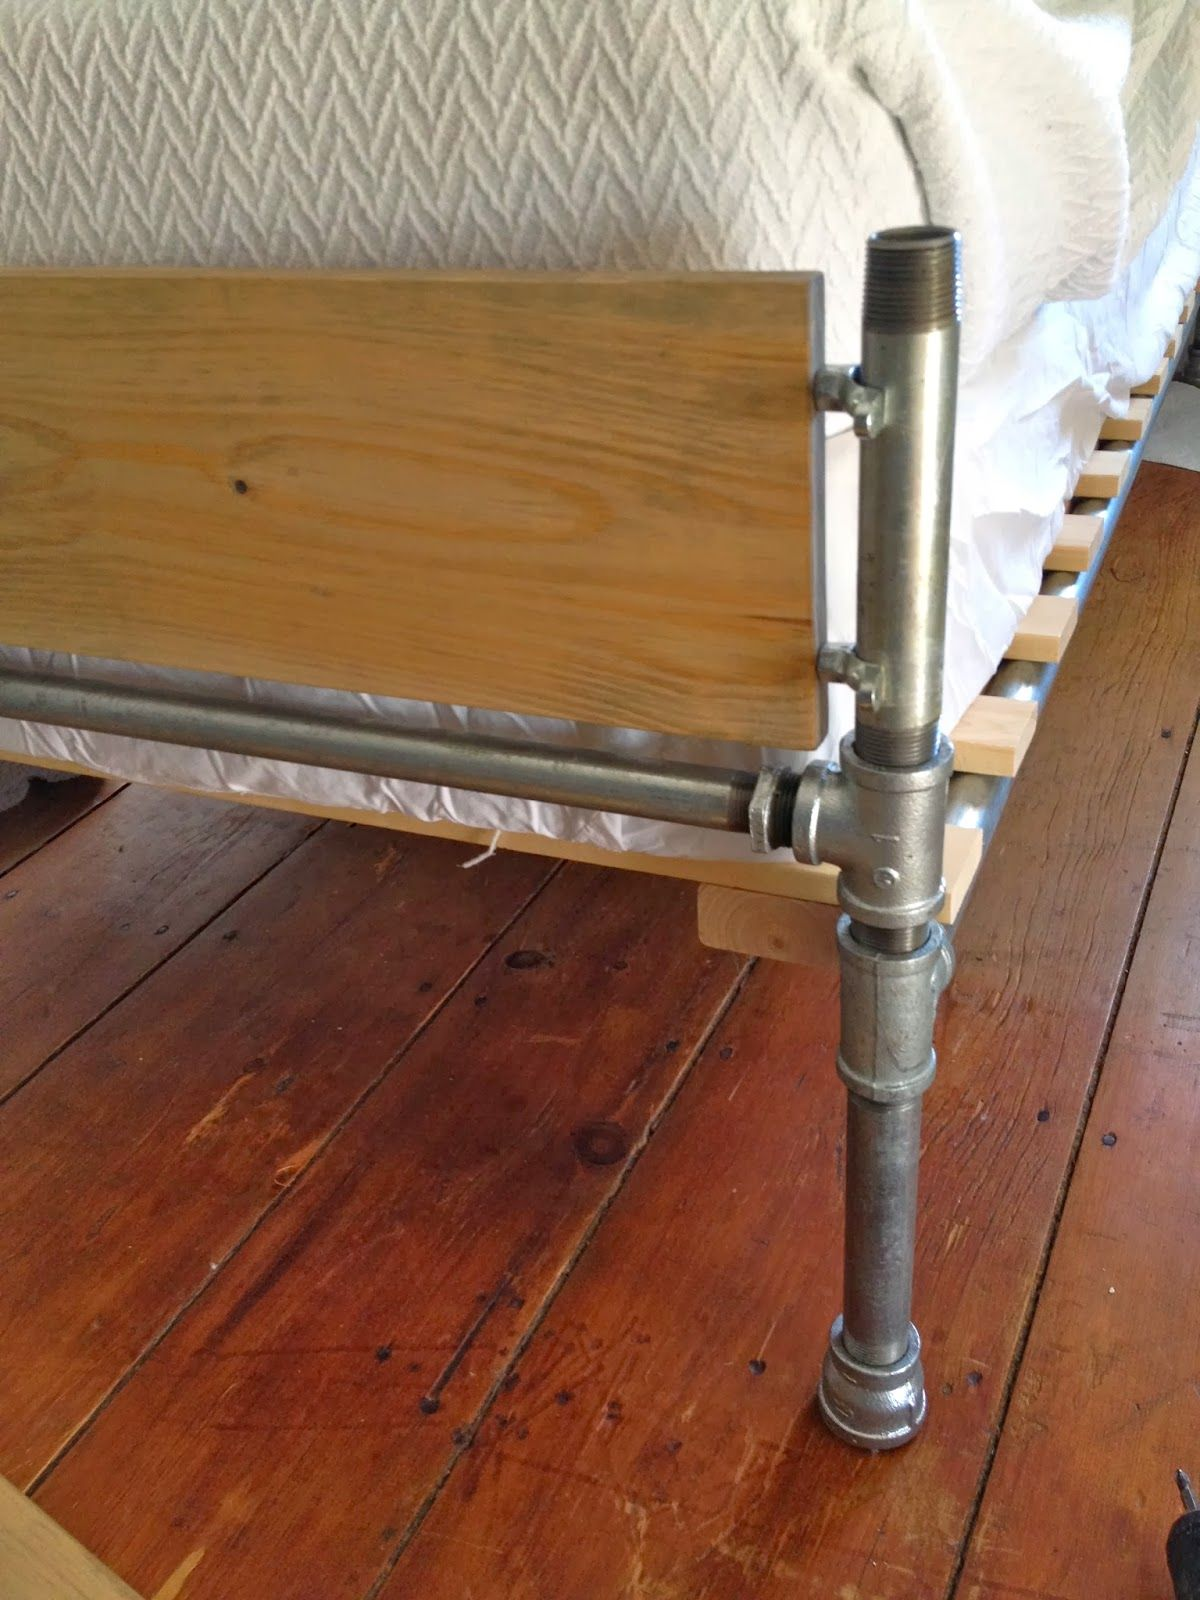 We Love How Thatu0027s My Letter, Inspired By Designs From Popular Retailers,  Created A DIY Plumbing Pipe Bed Frame Thatu0027s Undeniably Her Own.